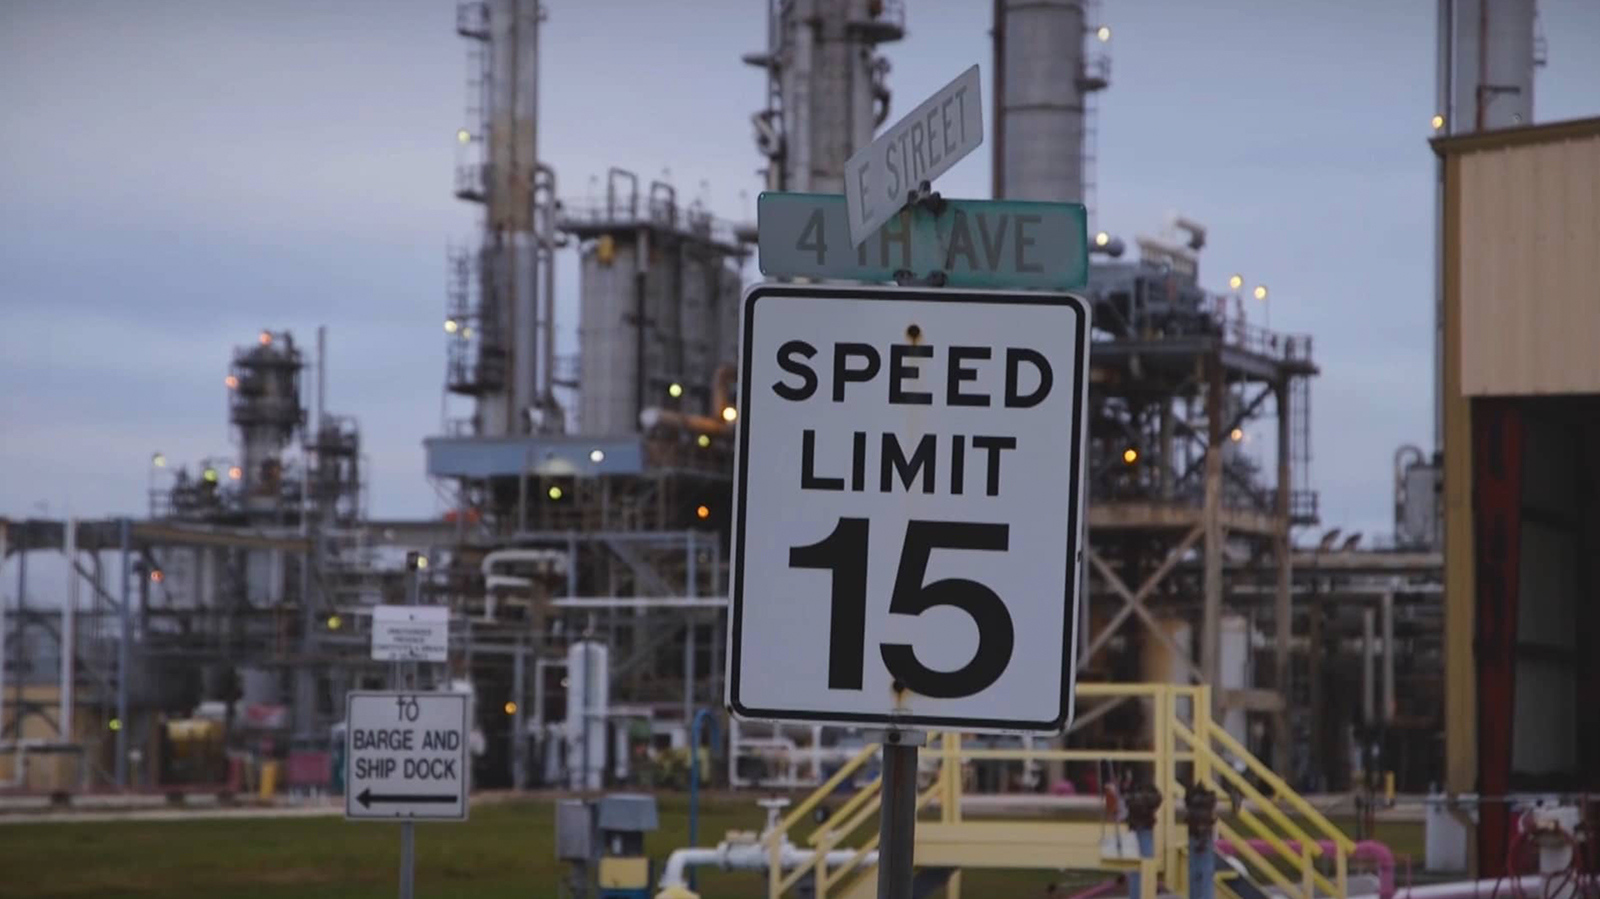 Ineos Phenol Safety movie, Houston